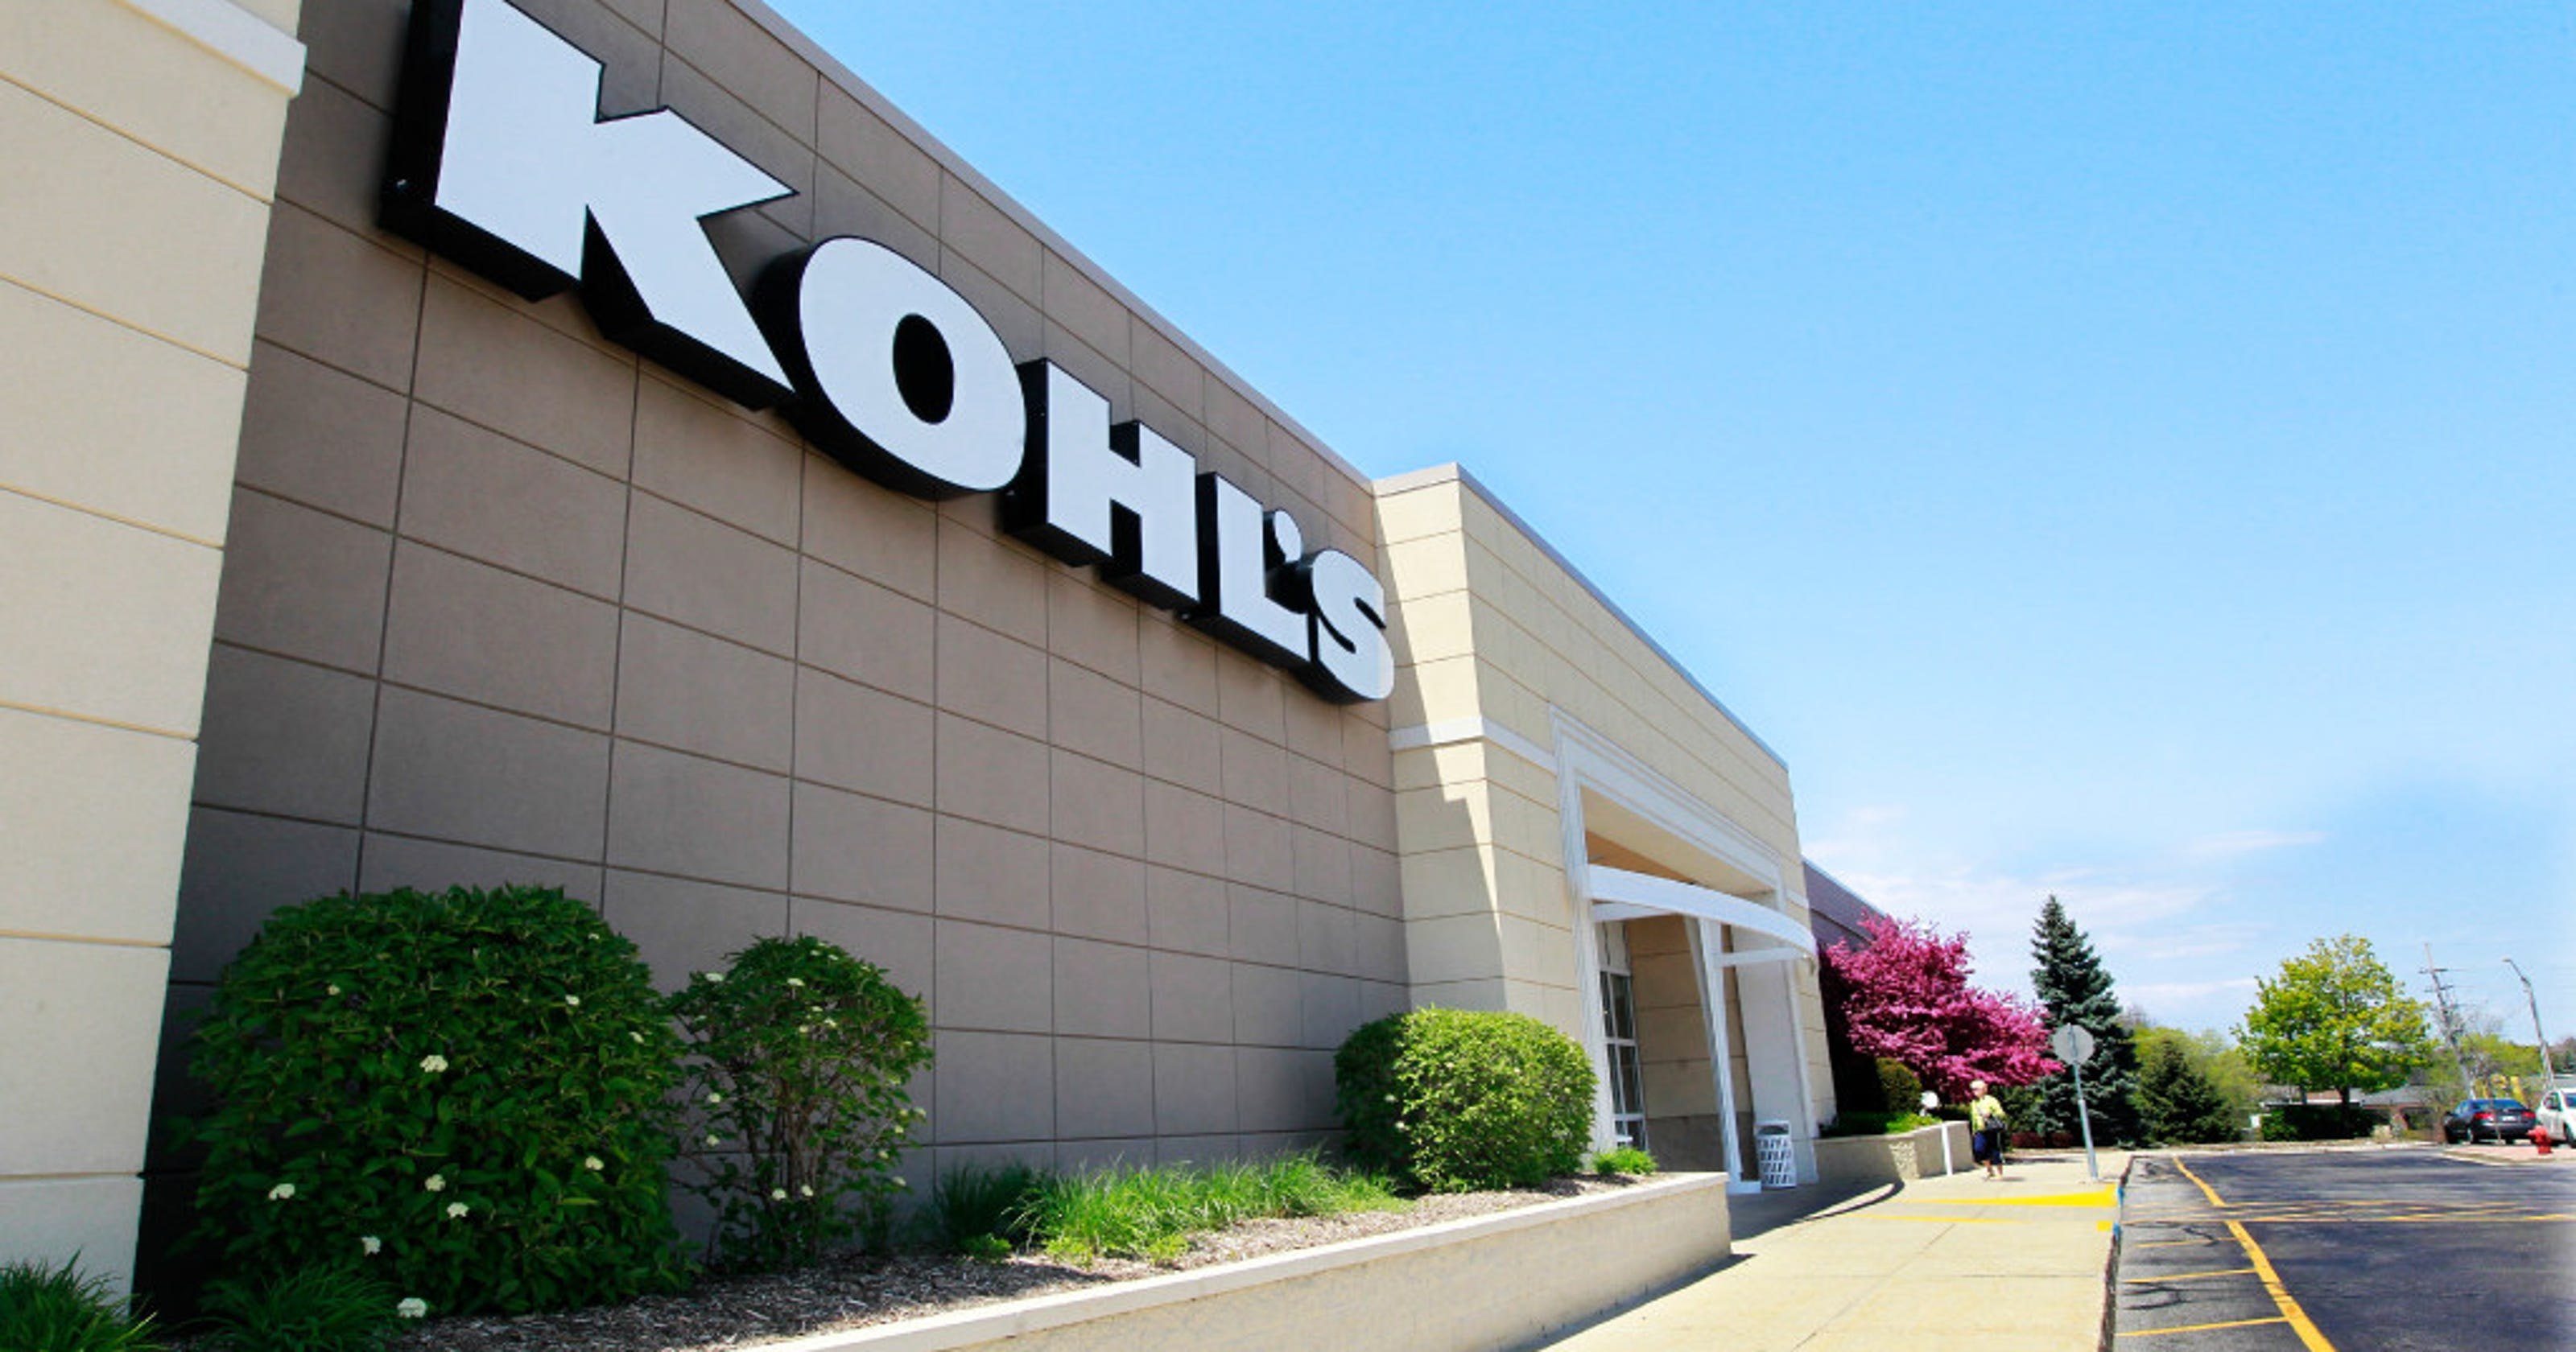 Kohl's is an American department store retail chain, operated by Kohl's Corporation. With 1, locations, it is the largest department store chain in the United States as of February The company was founded by Polish immigrant Maxwell Kohl, who opened a .